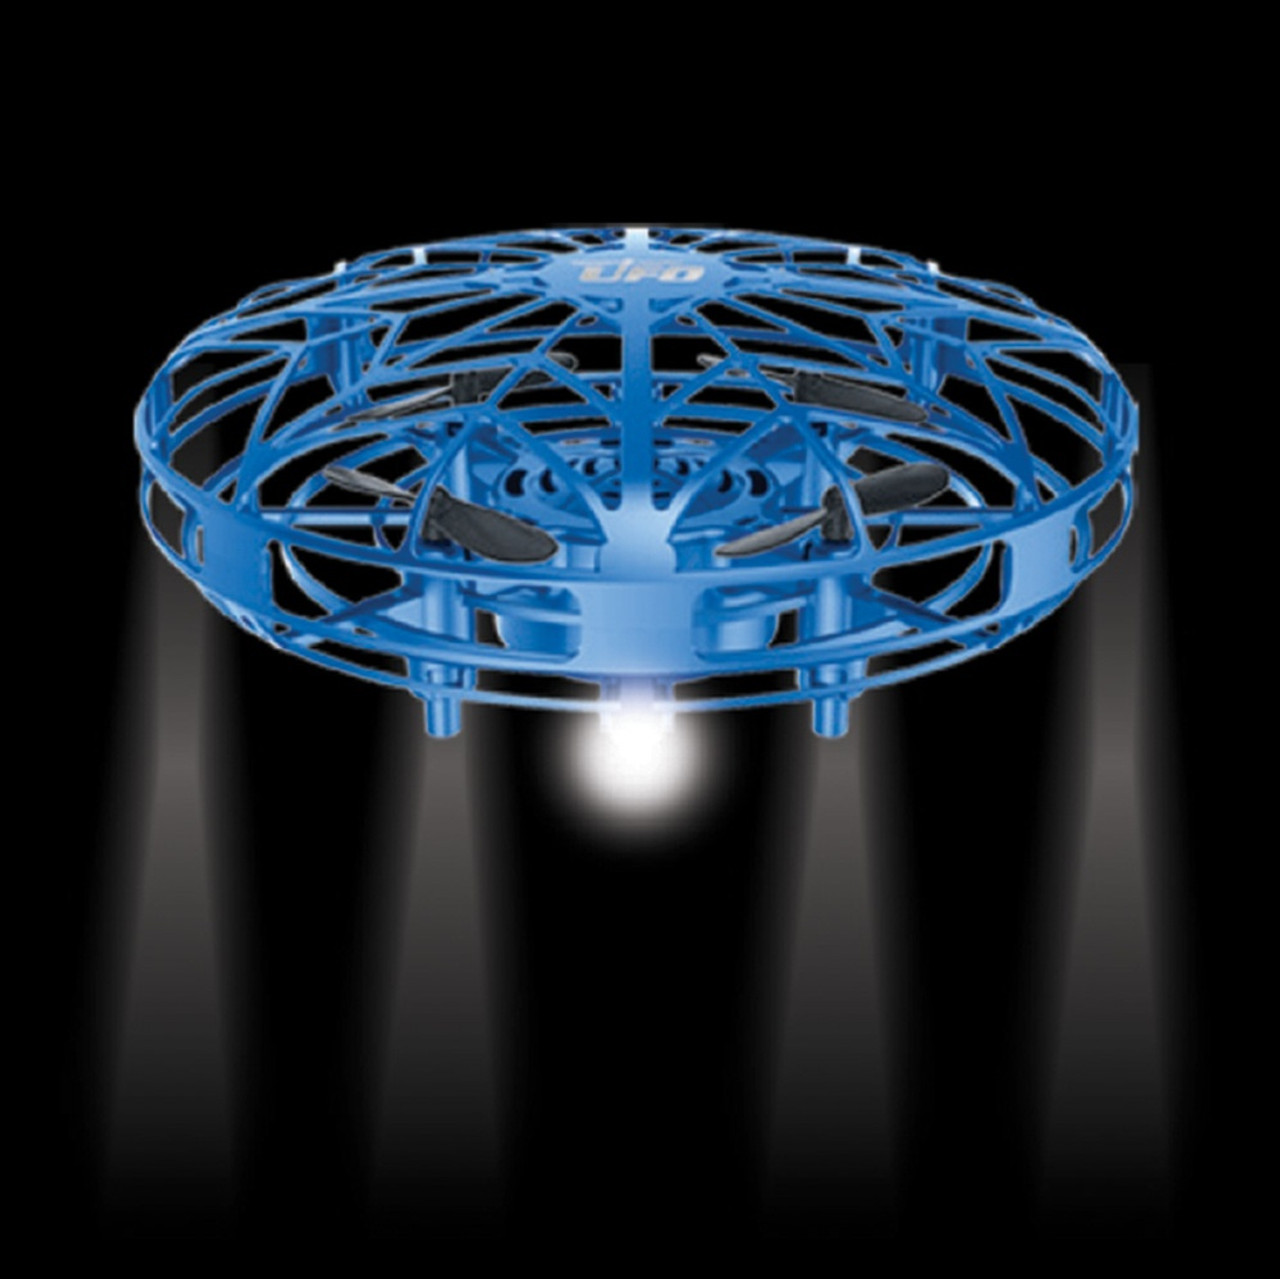 INDUCTION UFO DRONE BLUE